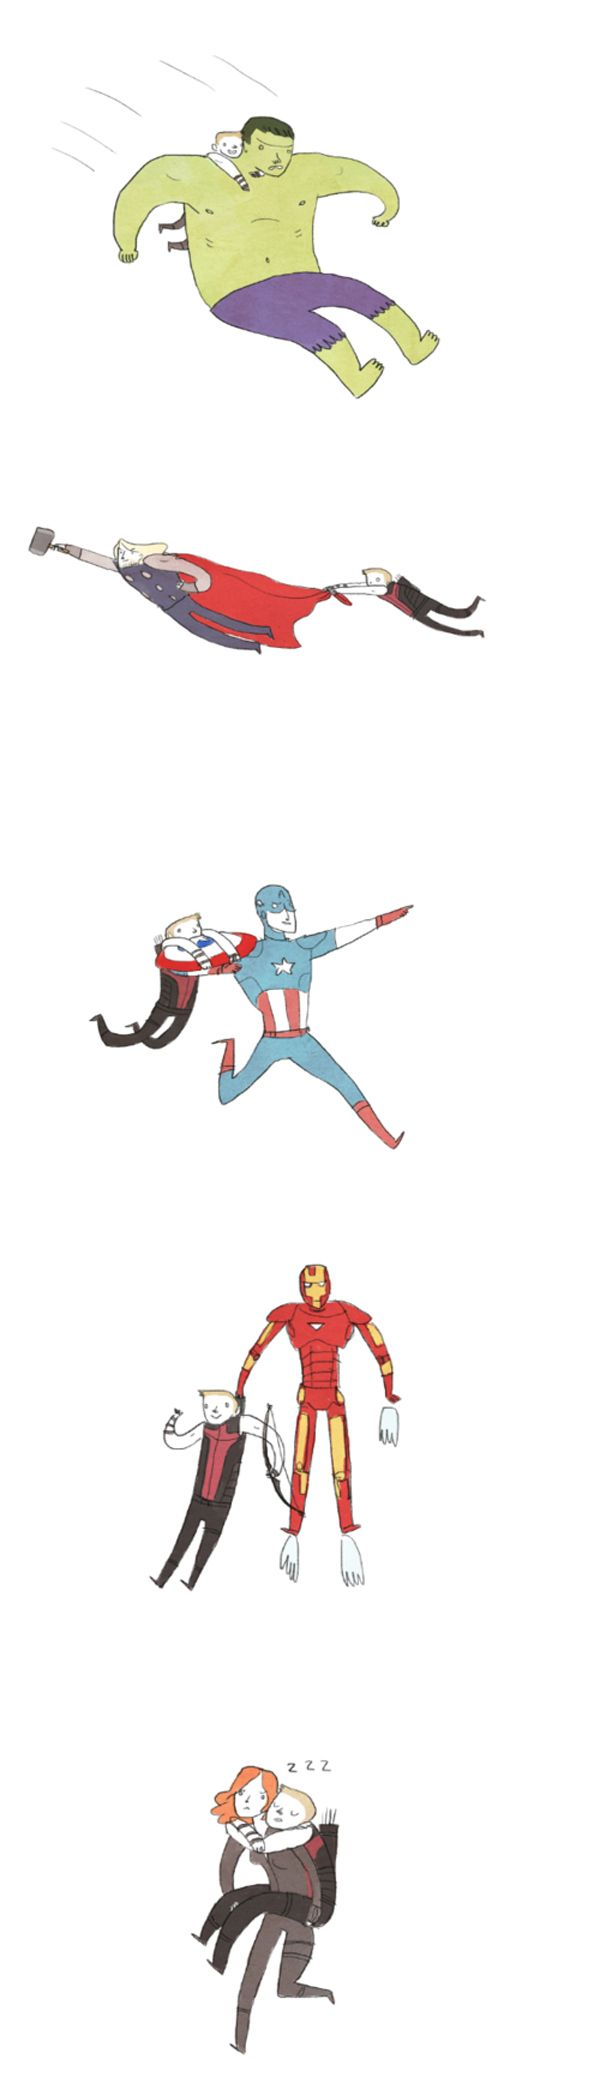 """""""Bitty Avengers"""" Parody Just As Good As The Real Thing"""